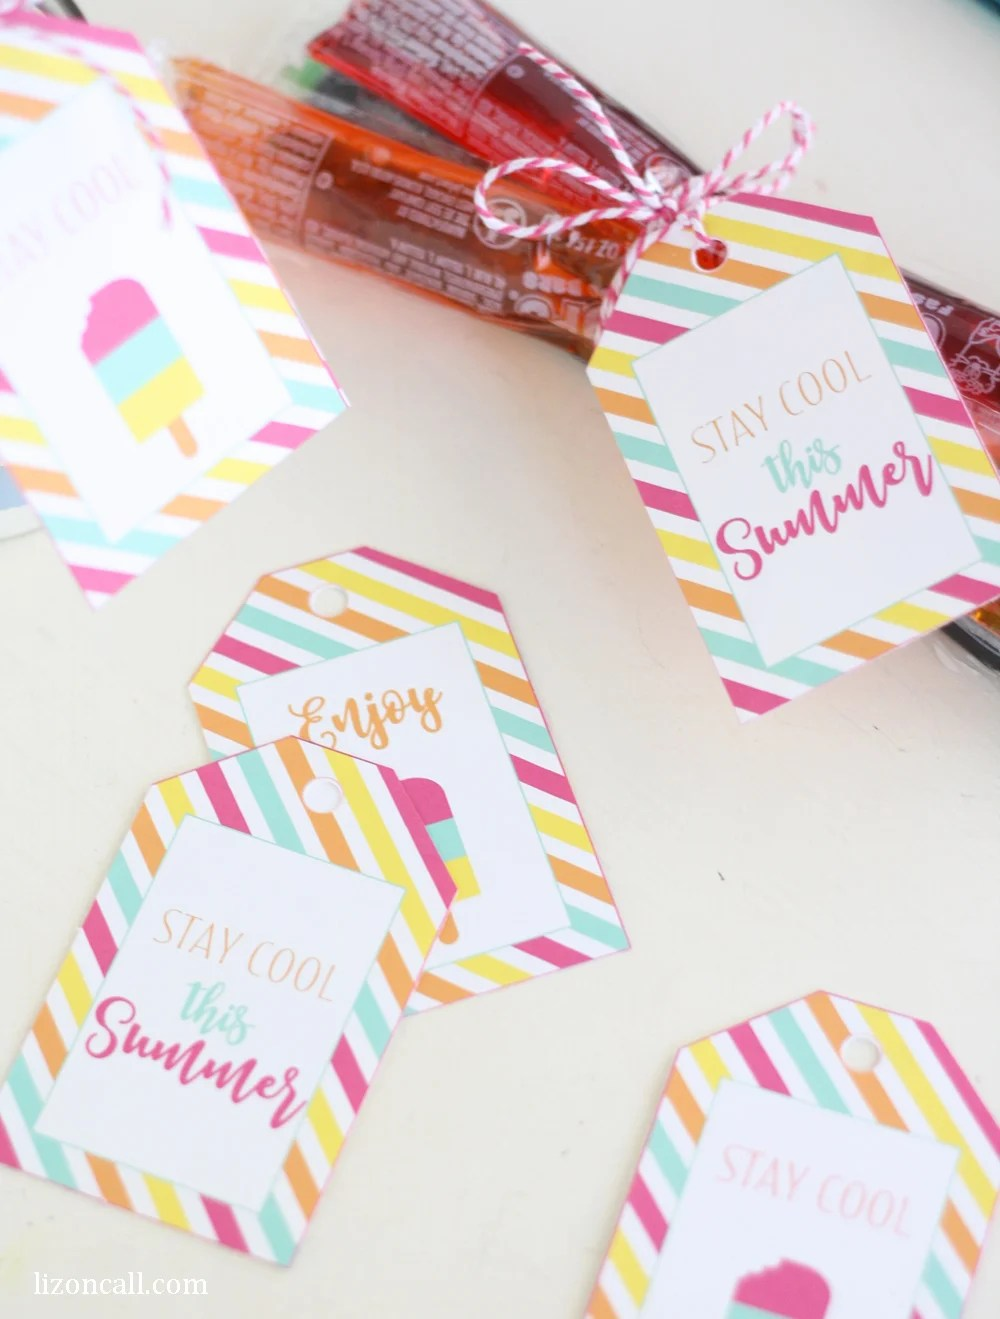 Give a summer treat to your friends and neighbors to help them stay cool this summer. Free printable stay cool summer gift tags.